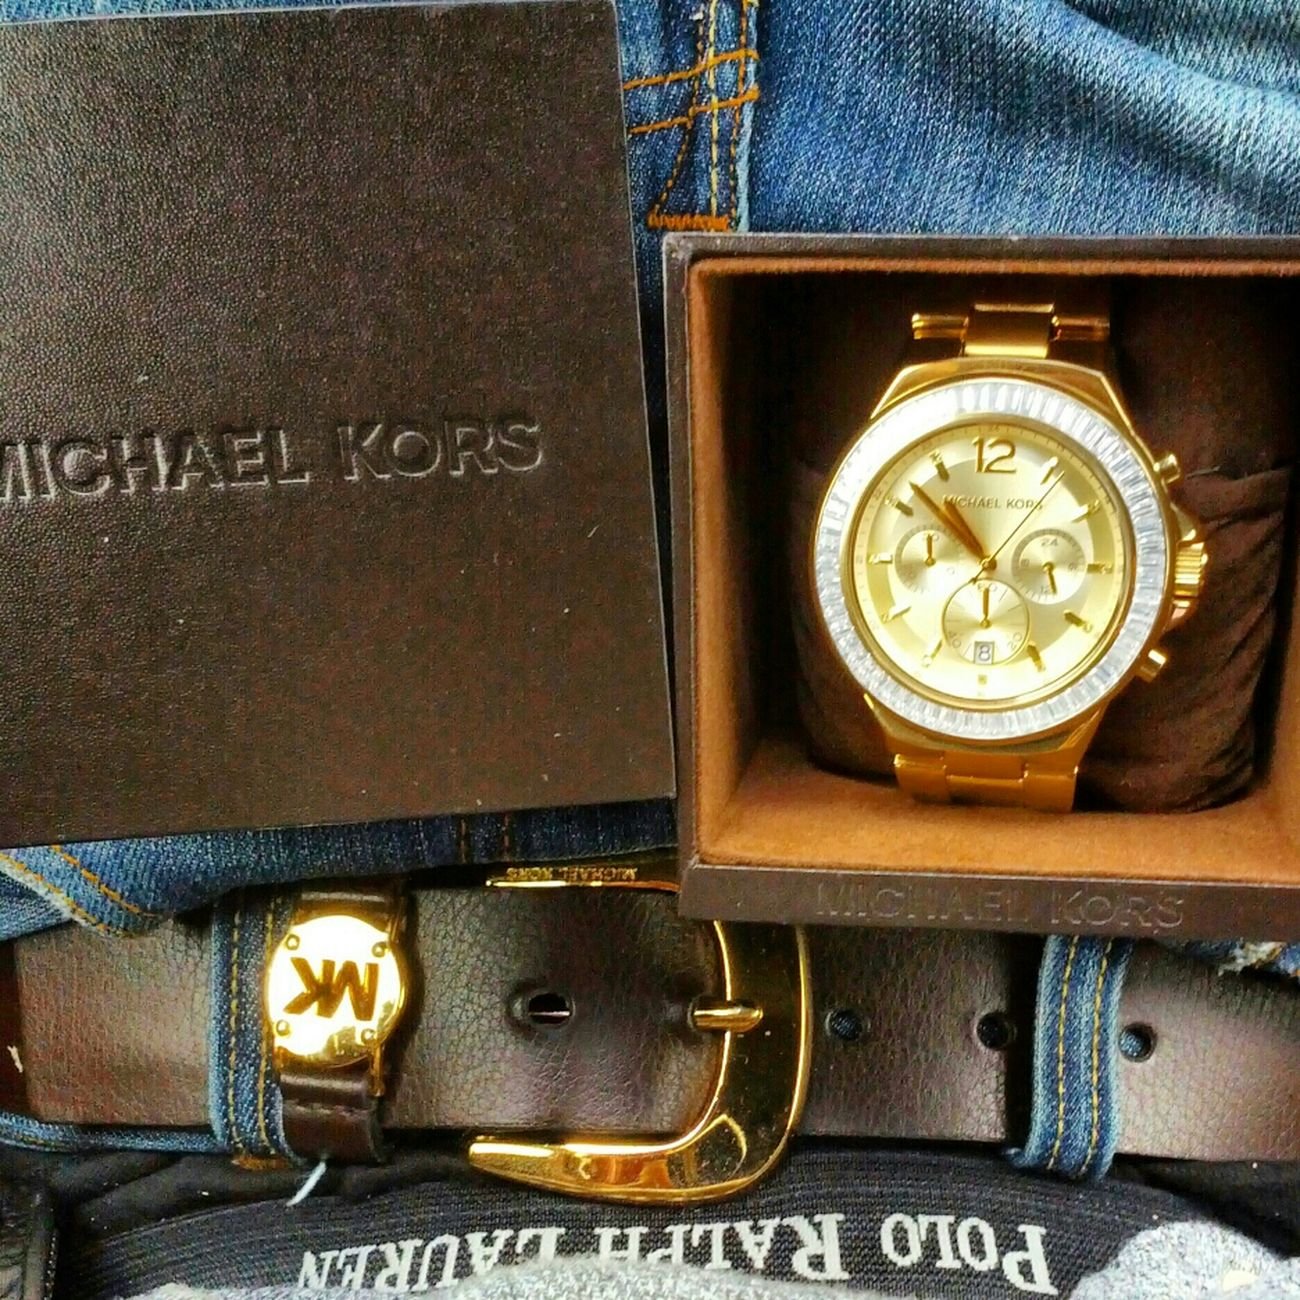 Hanging Out Bling Bling Gold MK Diamonds Michael Kors Icy GOLD GANG All Gold Everything Michaelkors